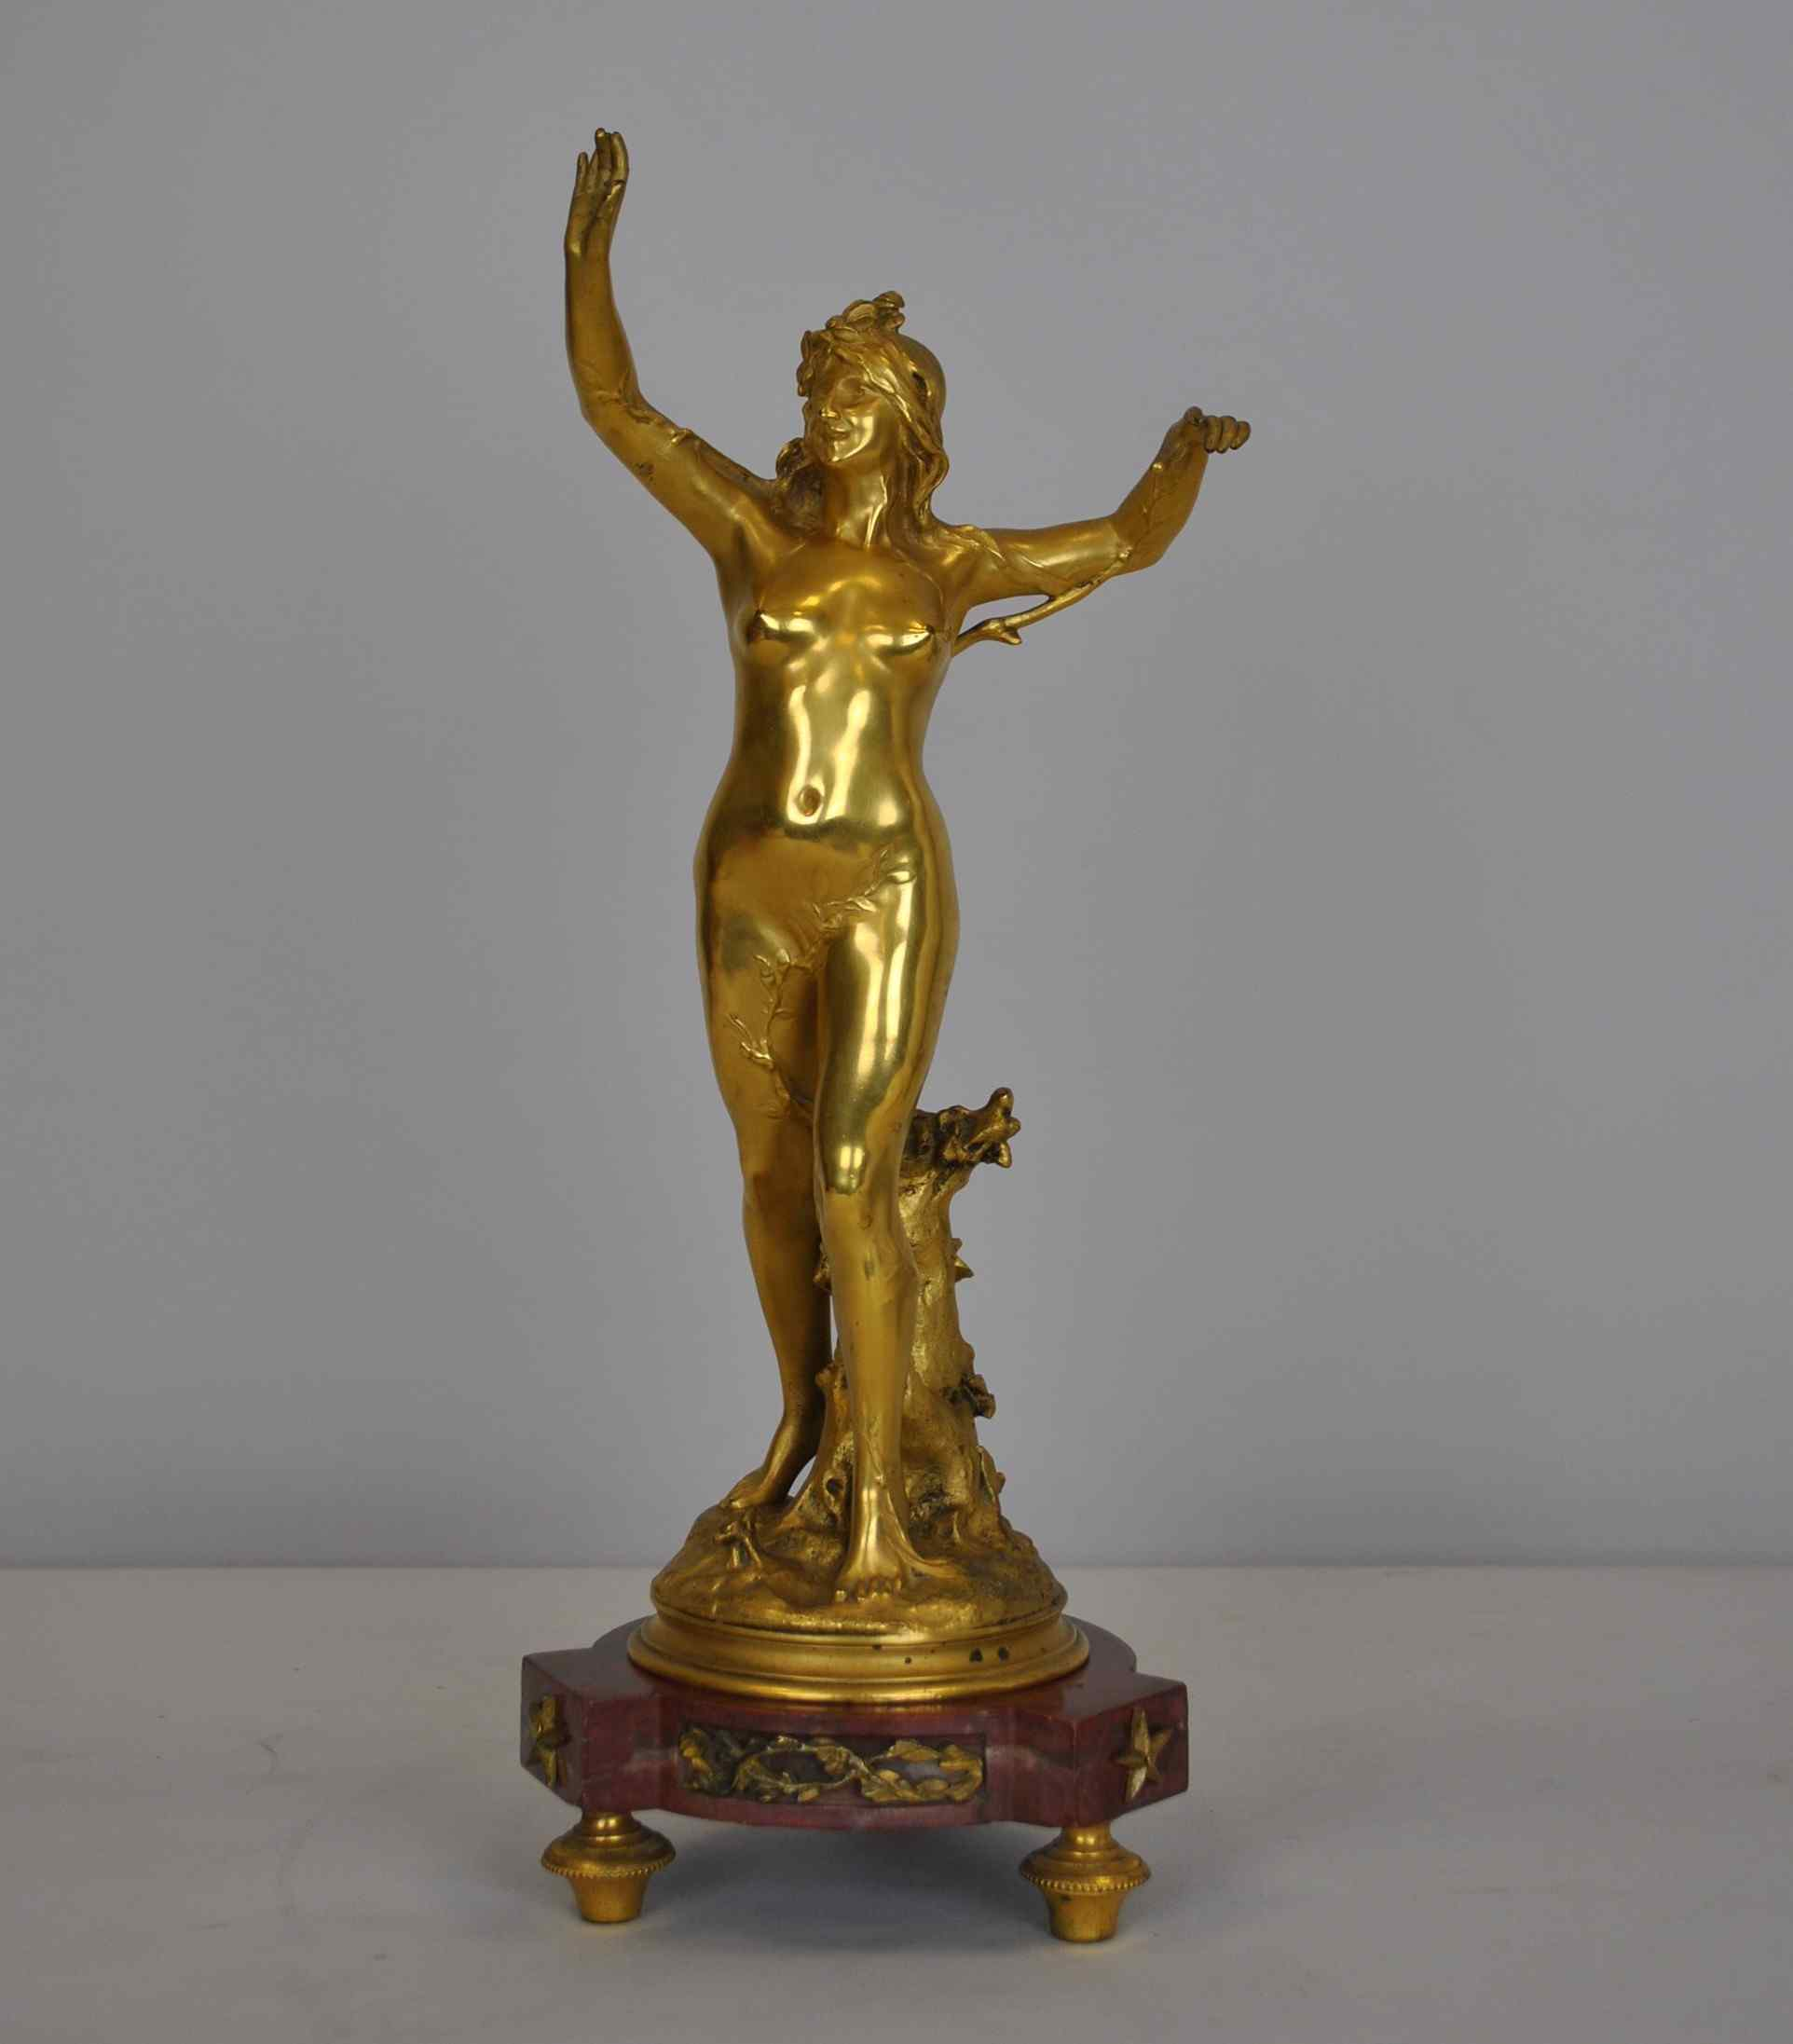 Raoul Larche, The sap, gilded bronze signed, XIXth